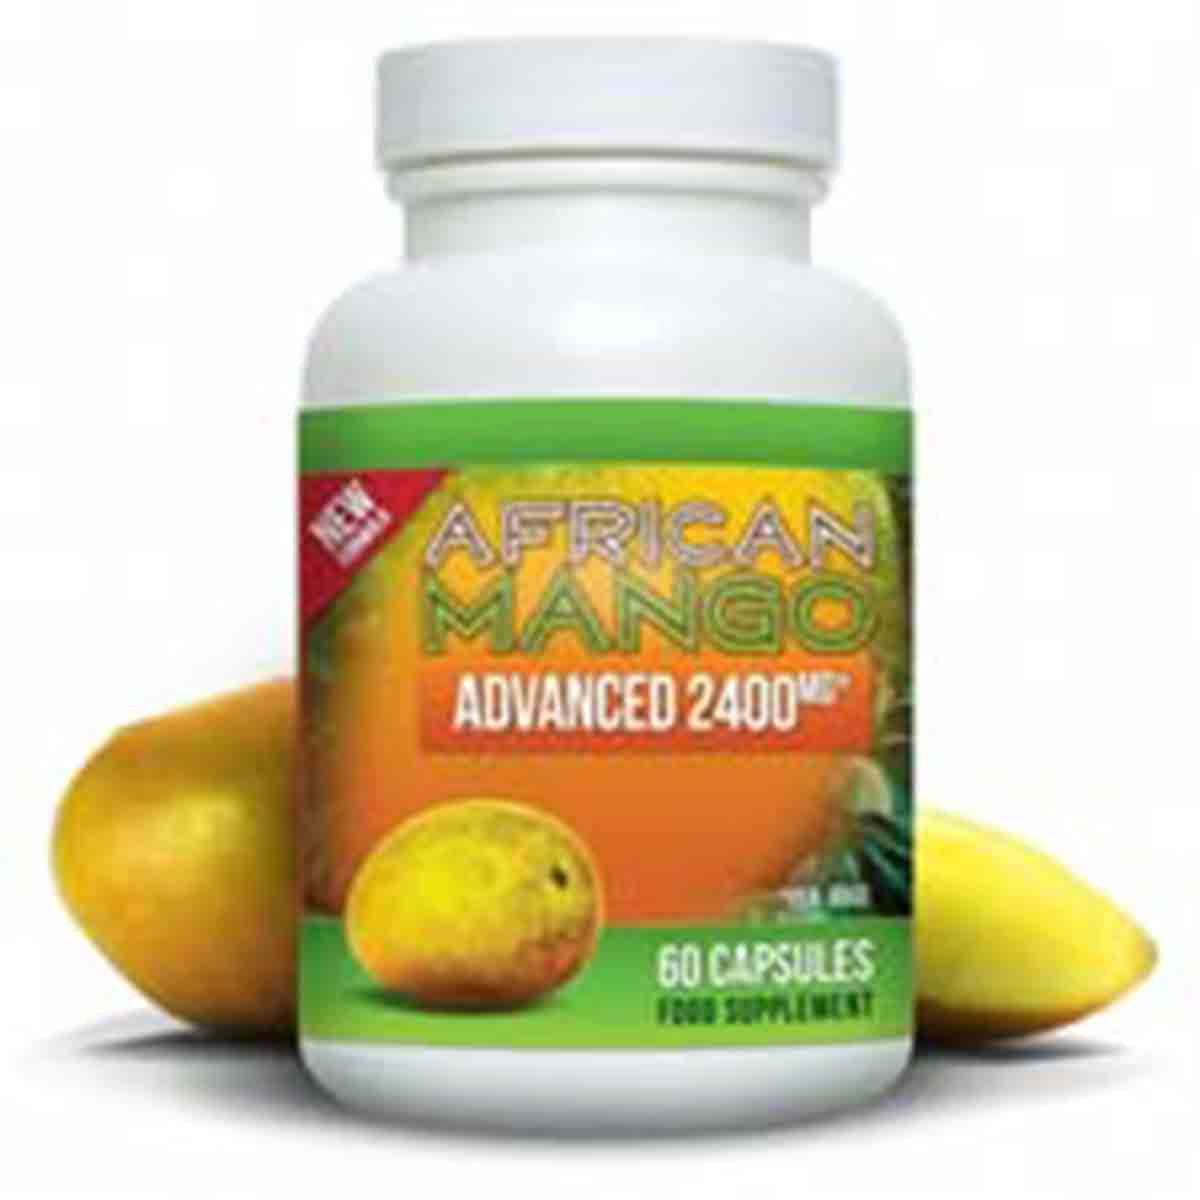 African Mango Advanced